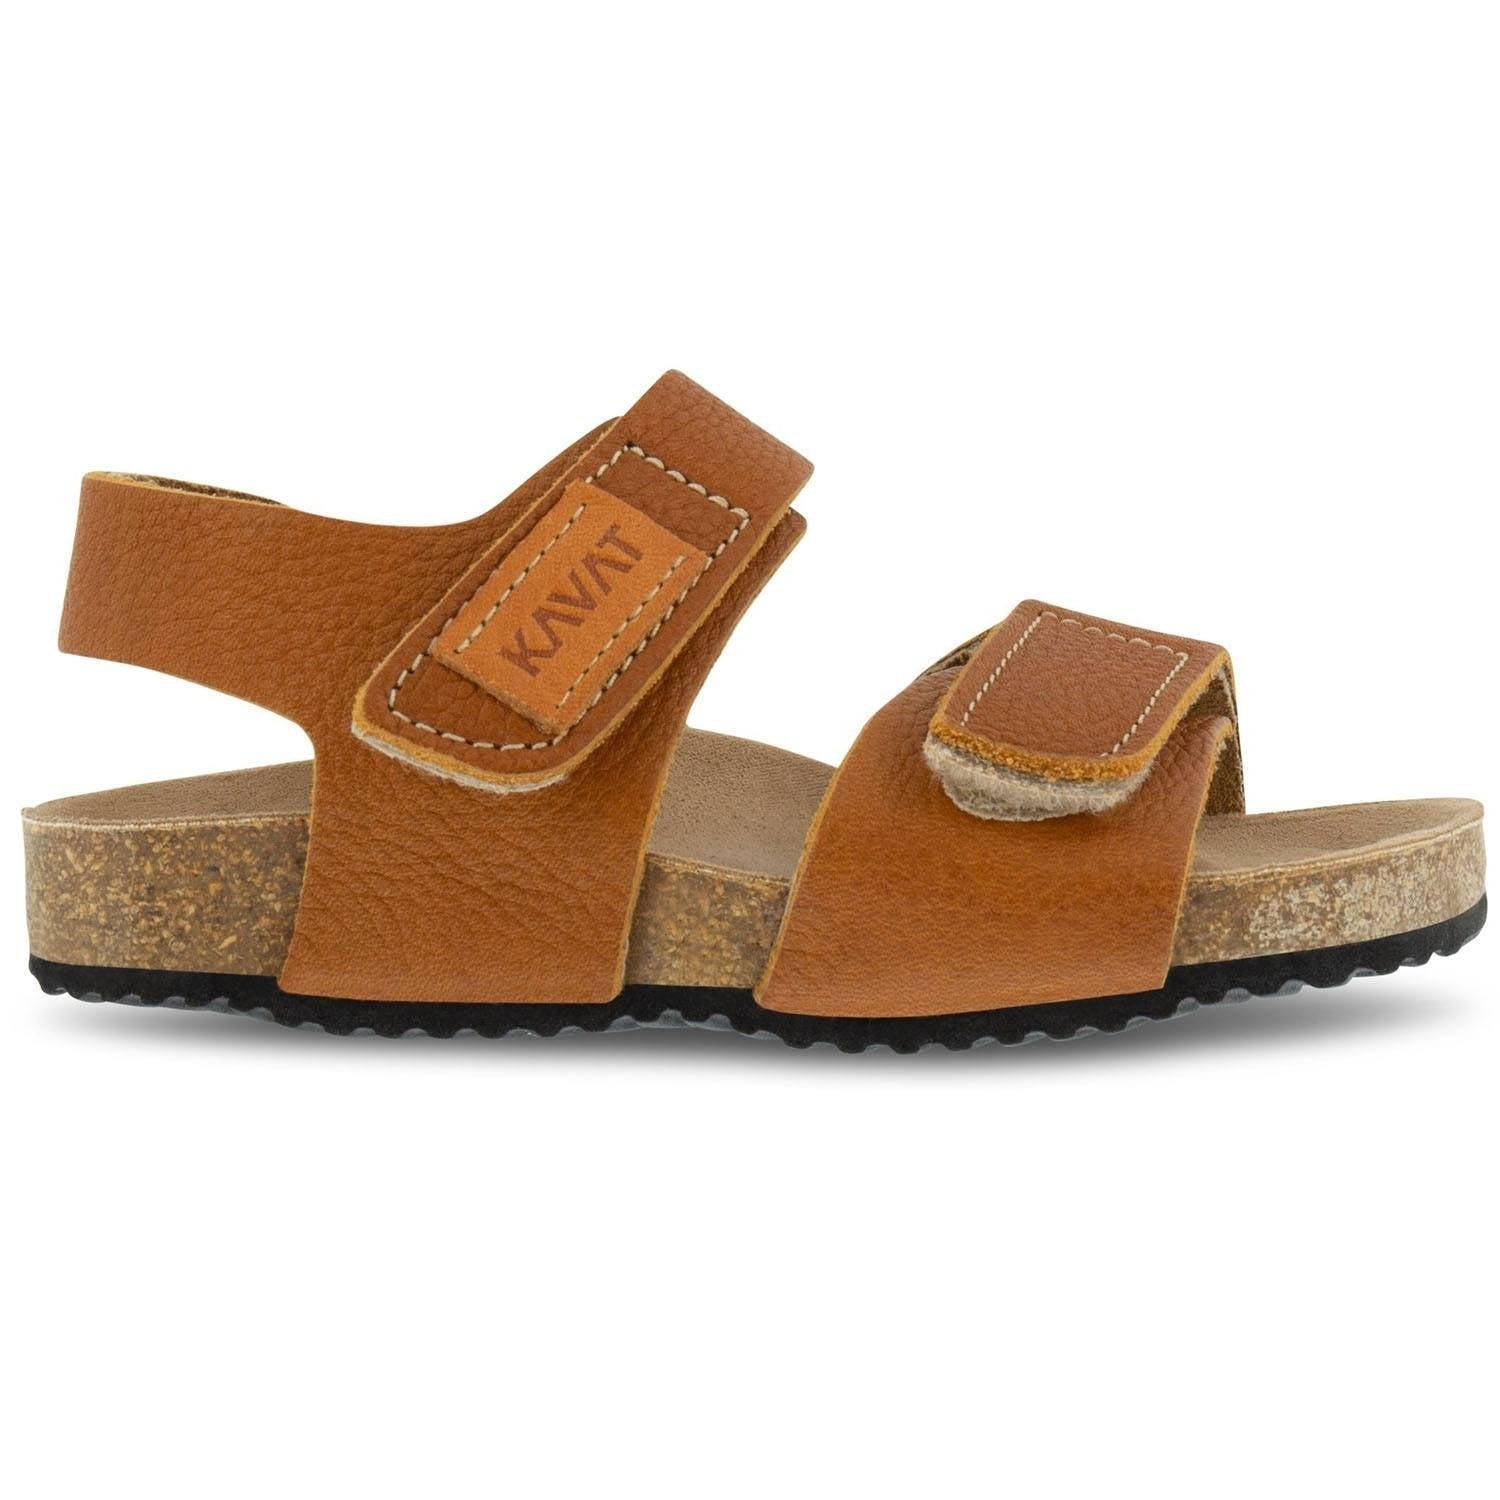 Image of   Kavat sandal, Bomhus - Light Brown